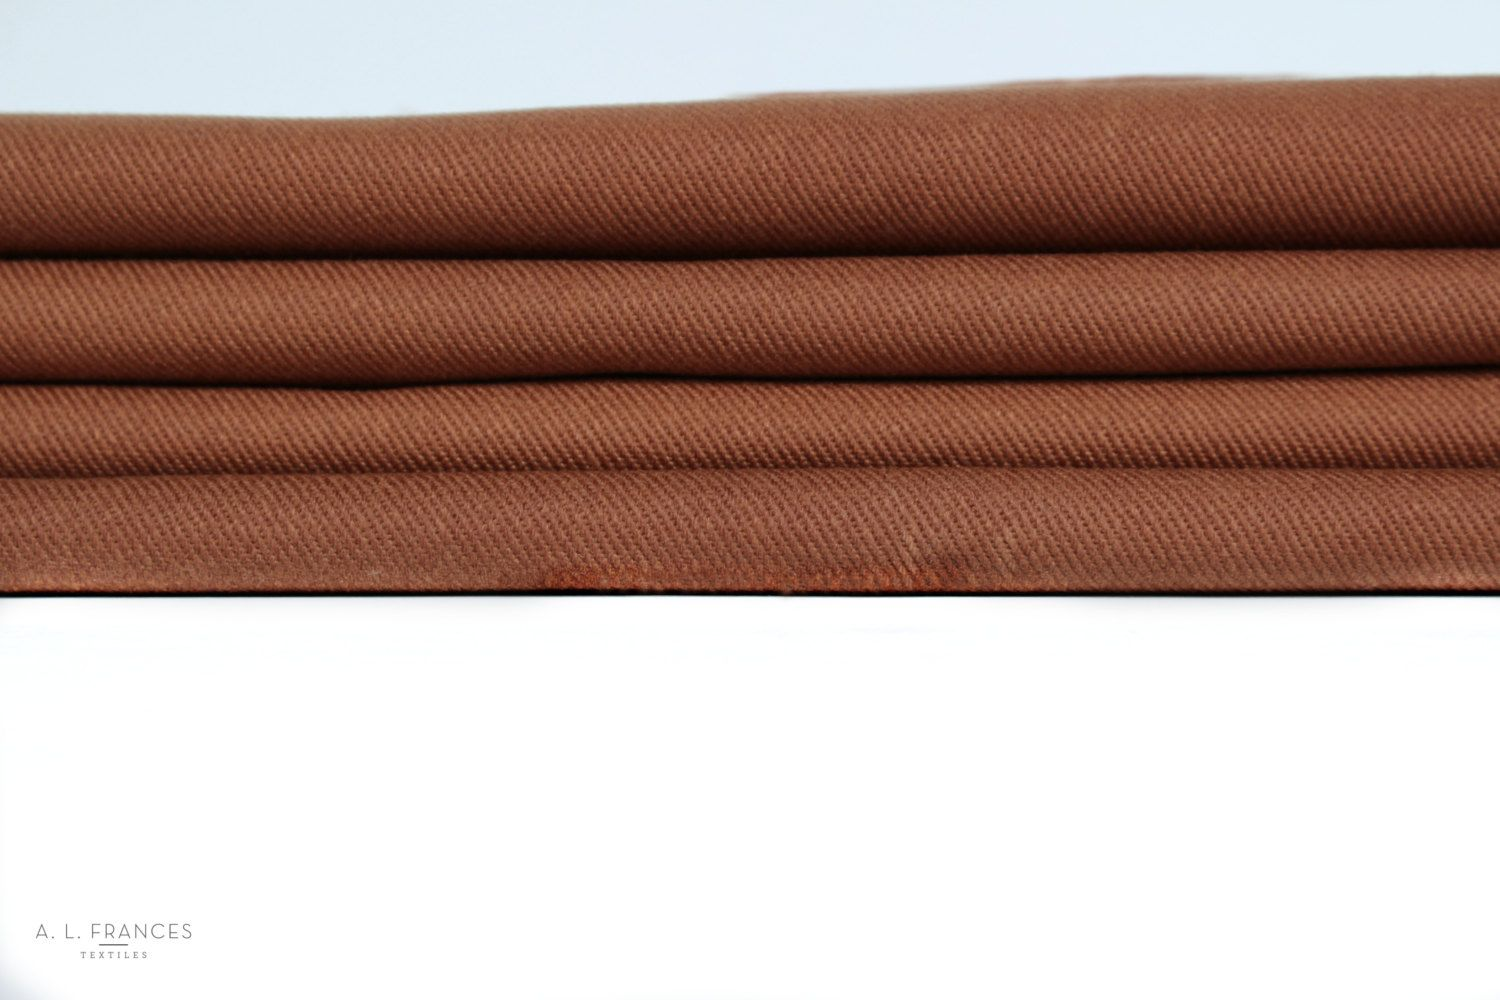 Waxed Cotton Denim Twill Fabric Copper 12 Oz 60 Inches Wide By The Yard Waxed Cotton Fabric Cotton